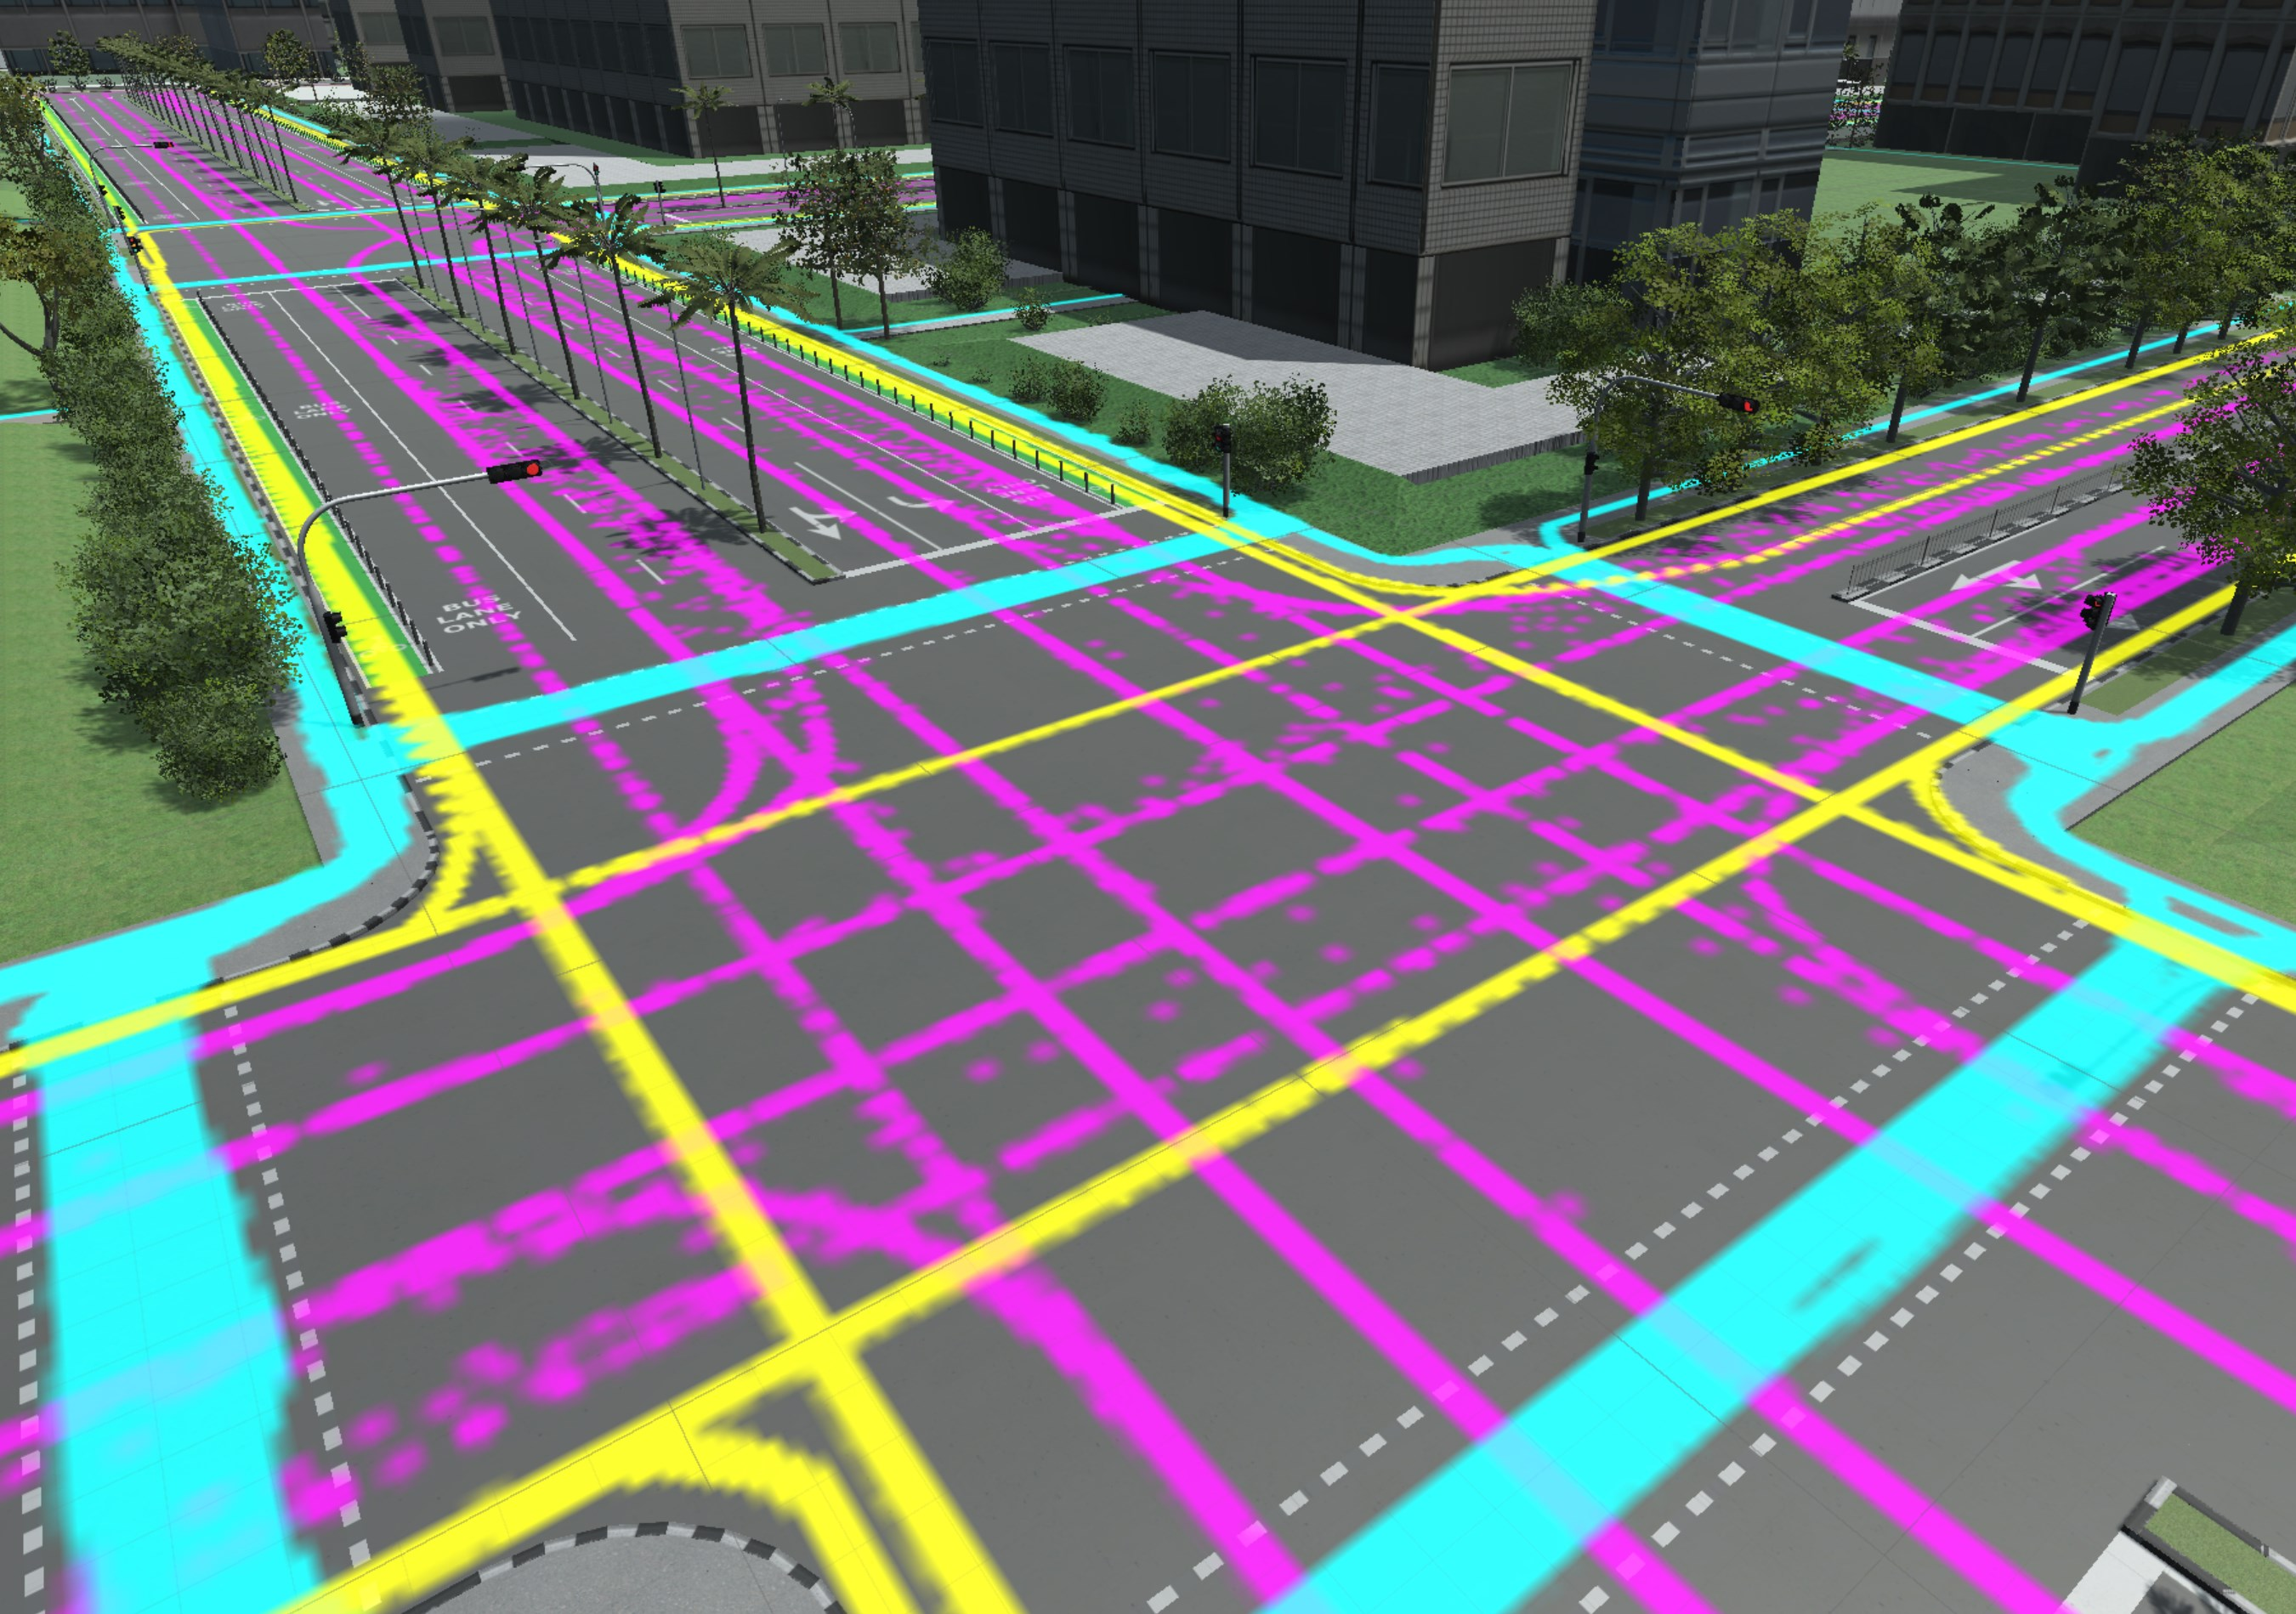 Figure 4: simulated traces of pedestrians (blue), cyclists (yellow) and vehicles (pink) projected on 3d model